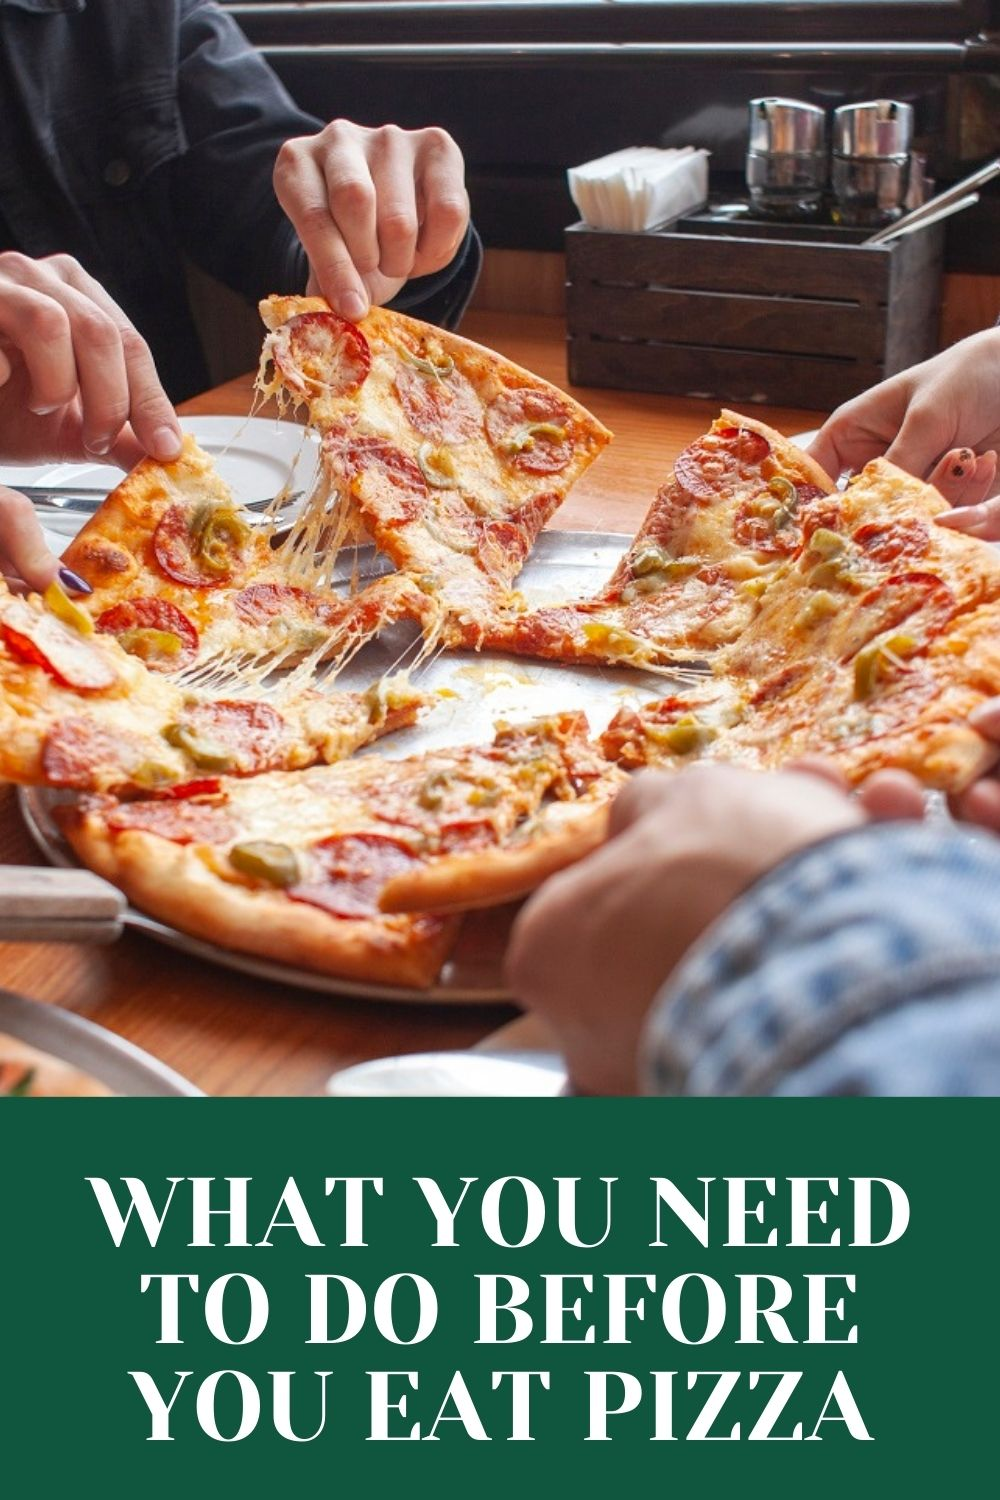 What you need to do before you eat pizza